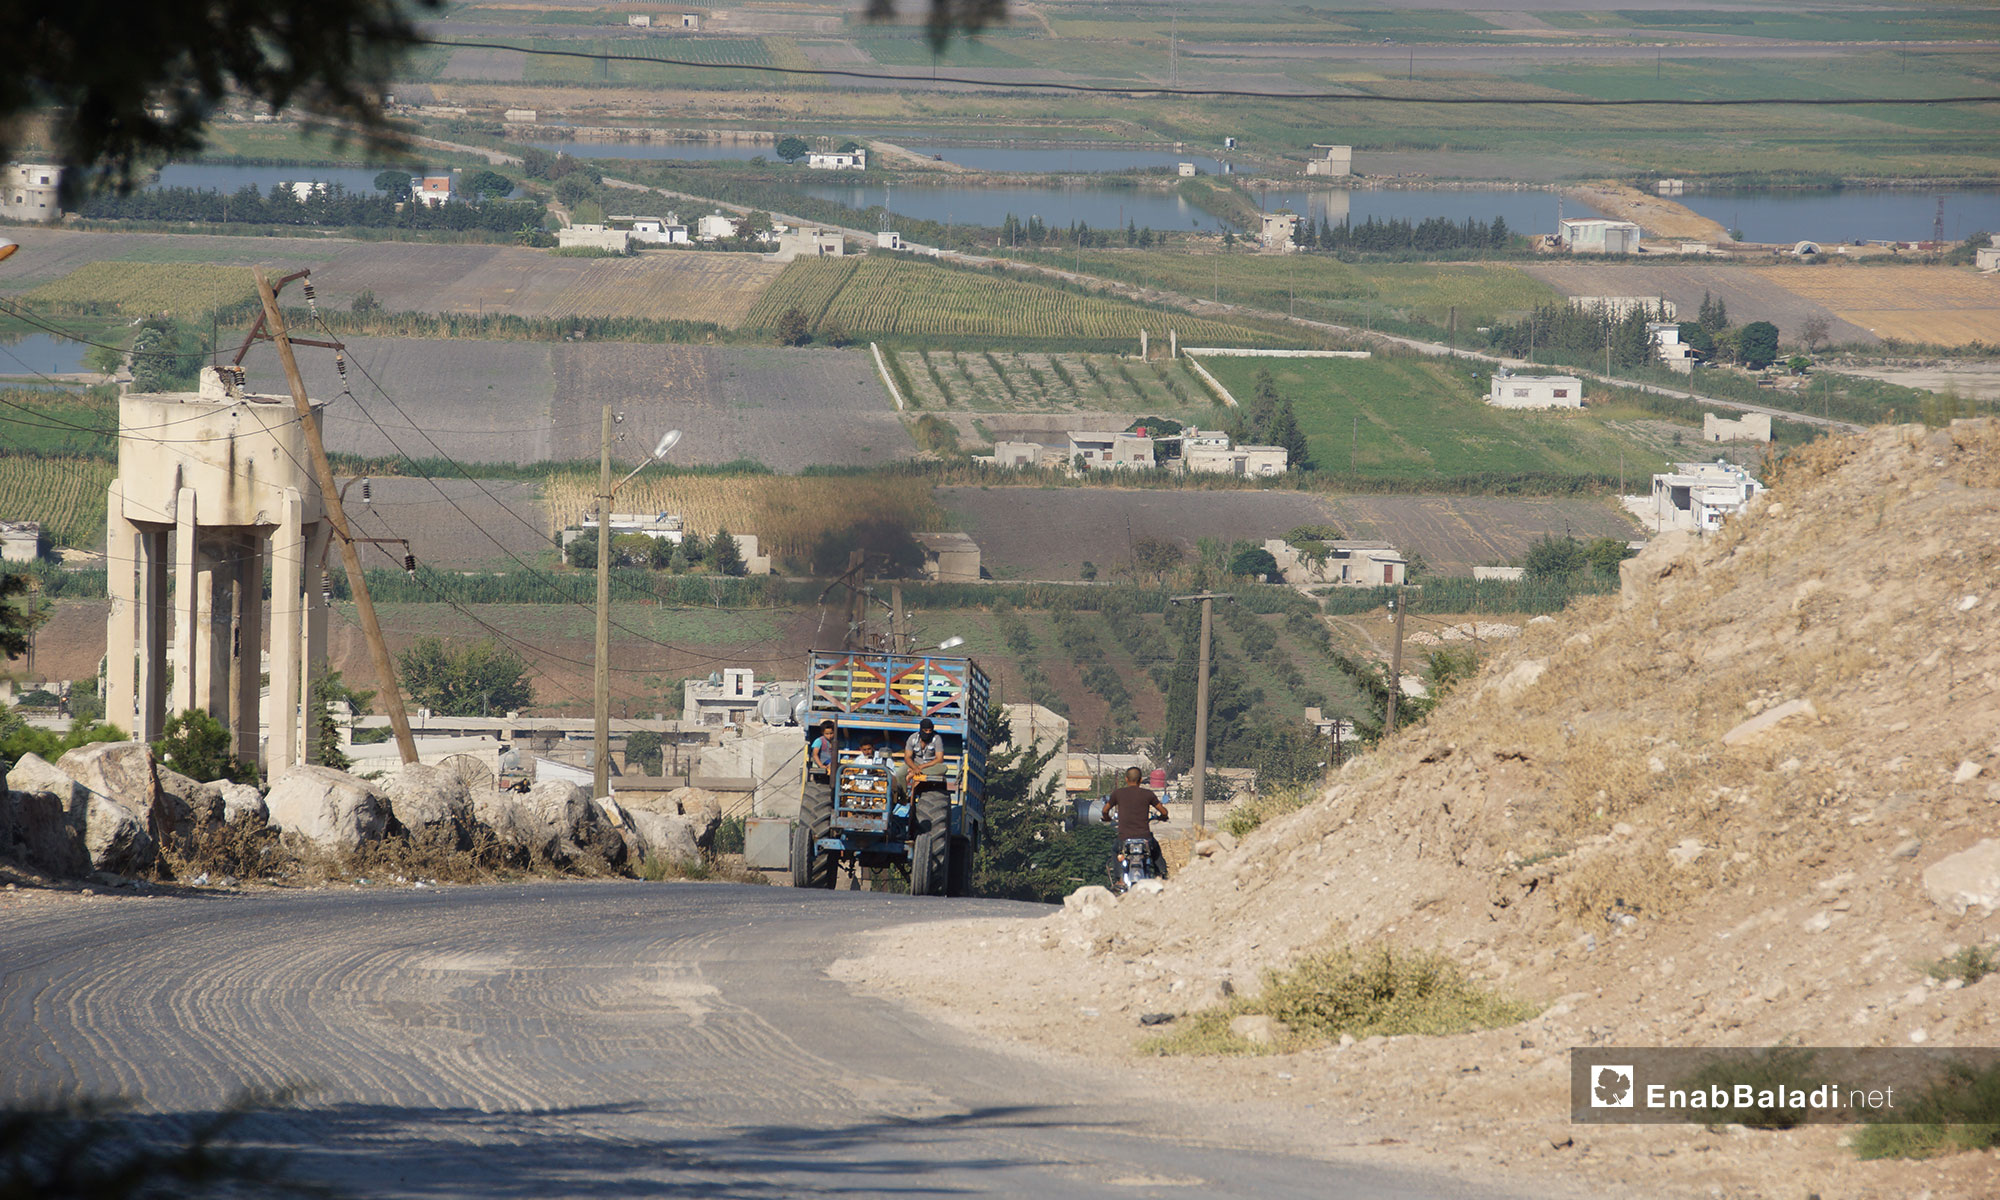 The displacement of Qalaat al-Madiq town's people due to bombardment, rural Hama – September 9, 2018 (Enab Baladi)